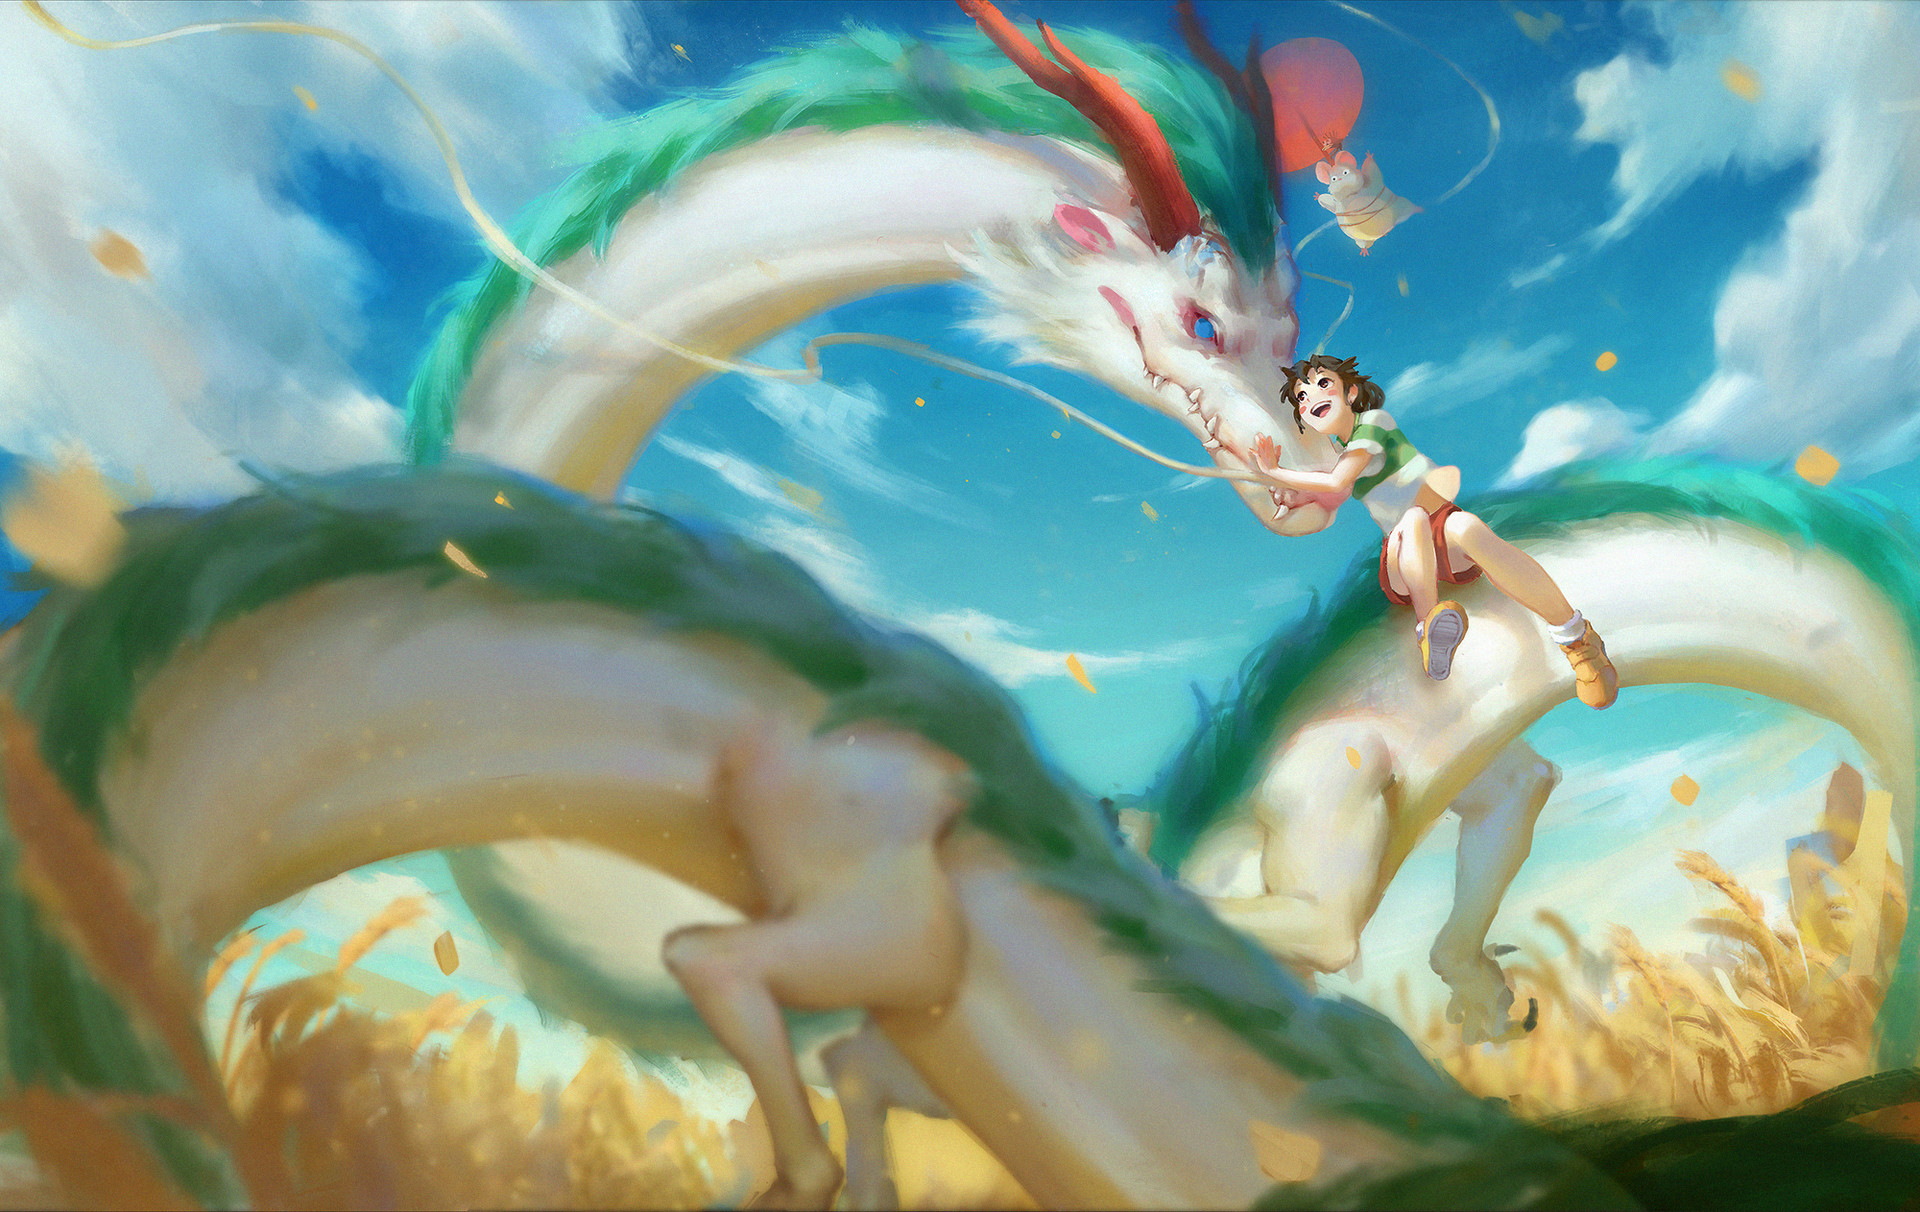 Spirited Away Wallpapers, Pictures, Images